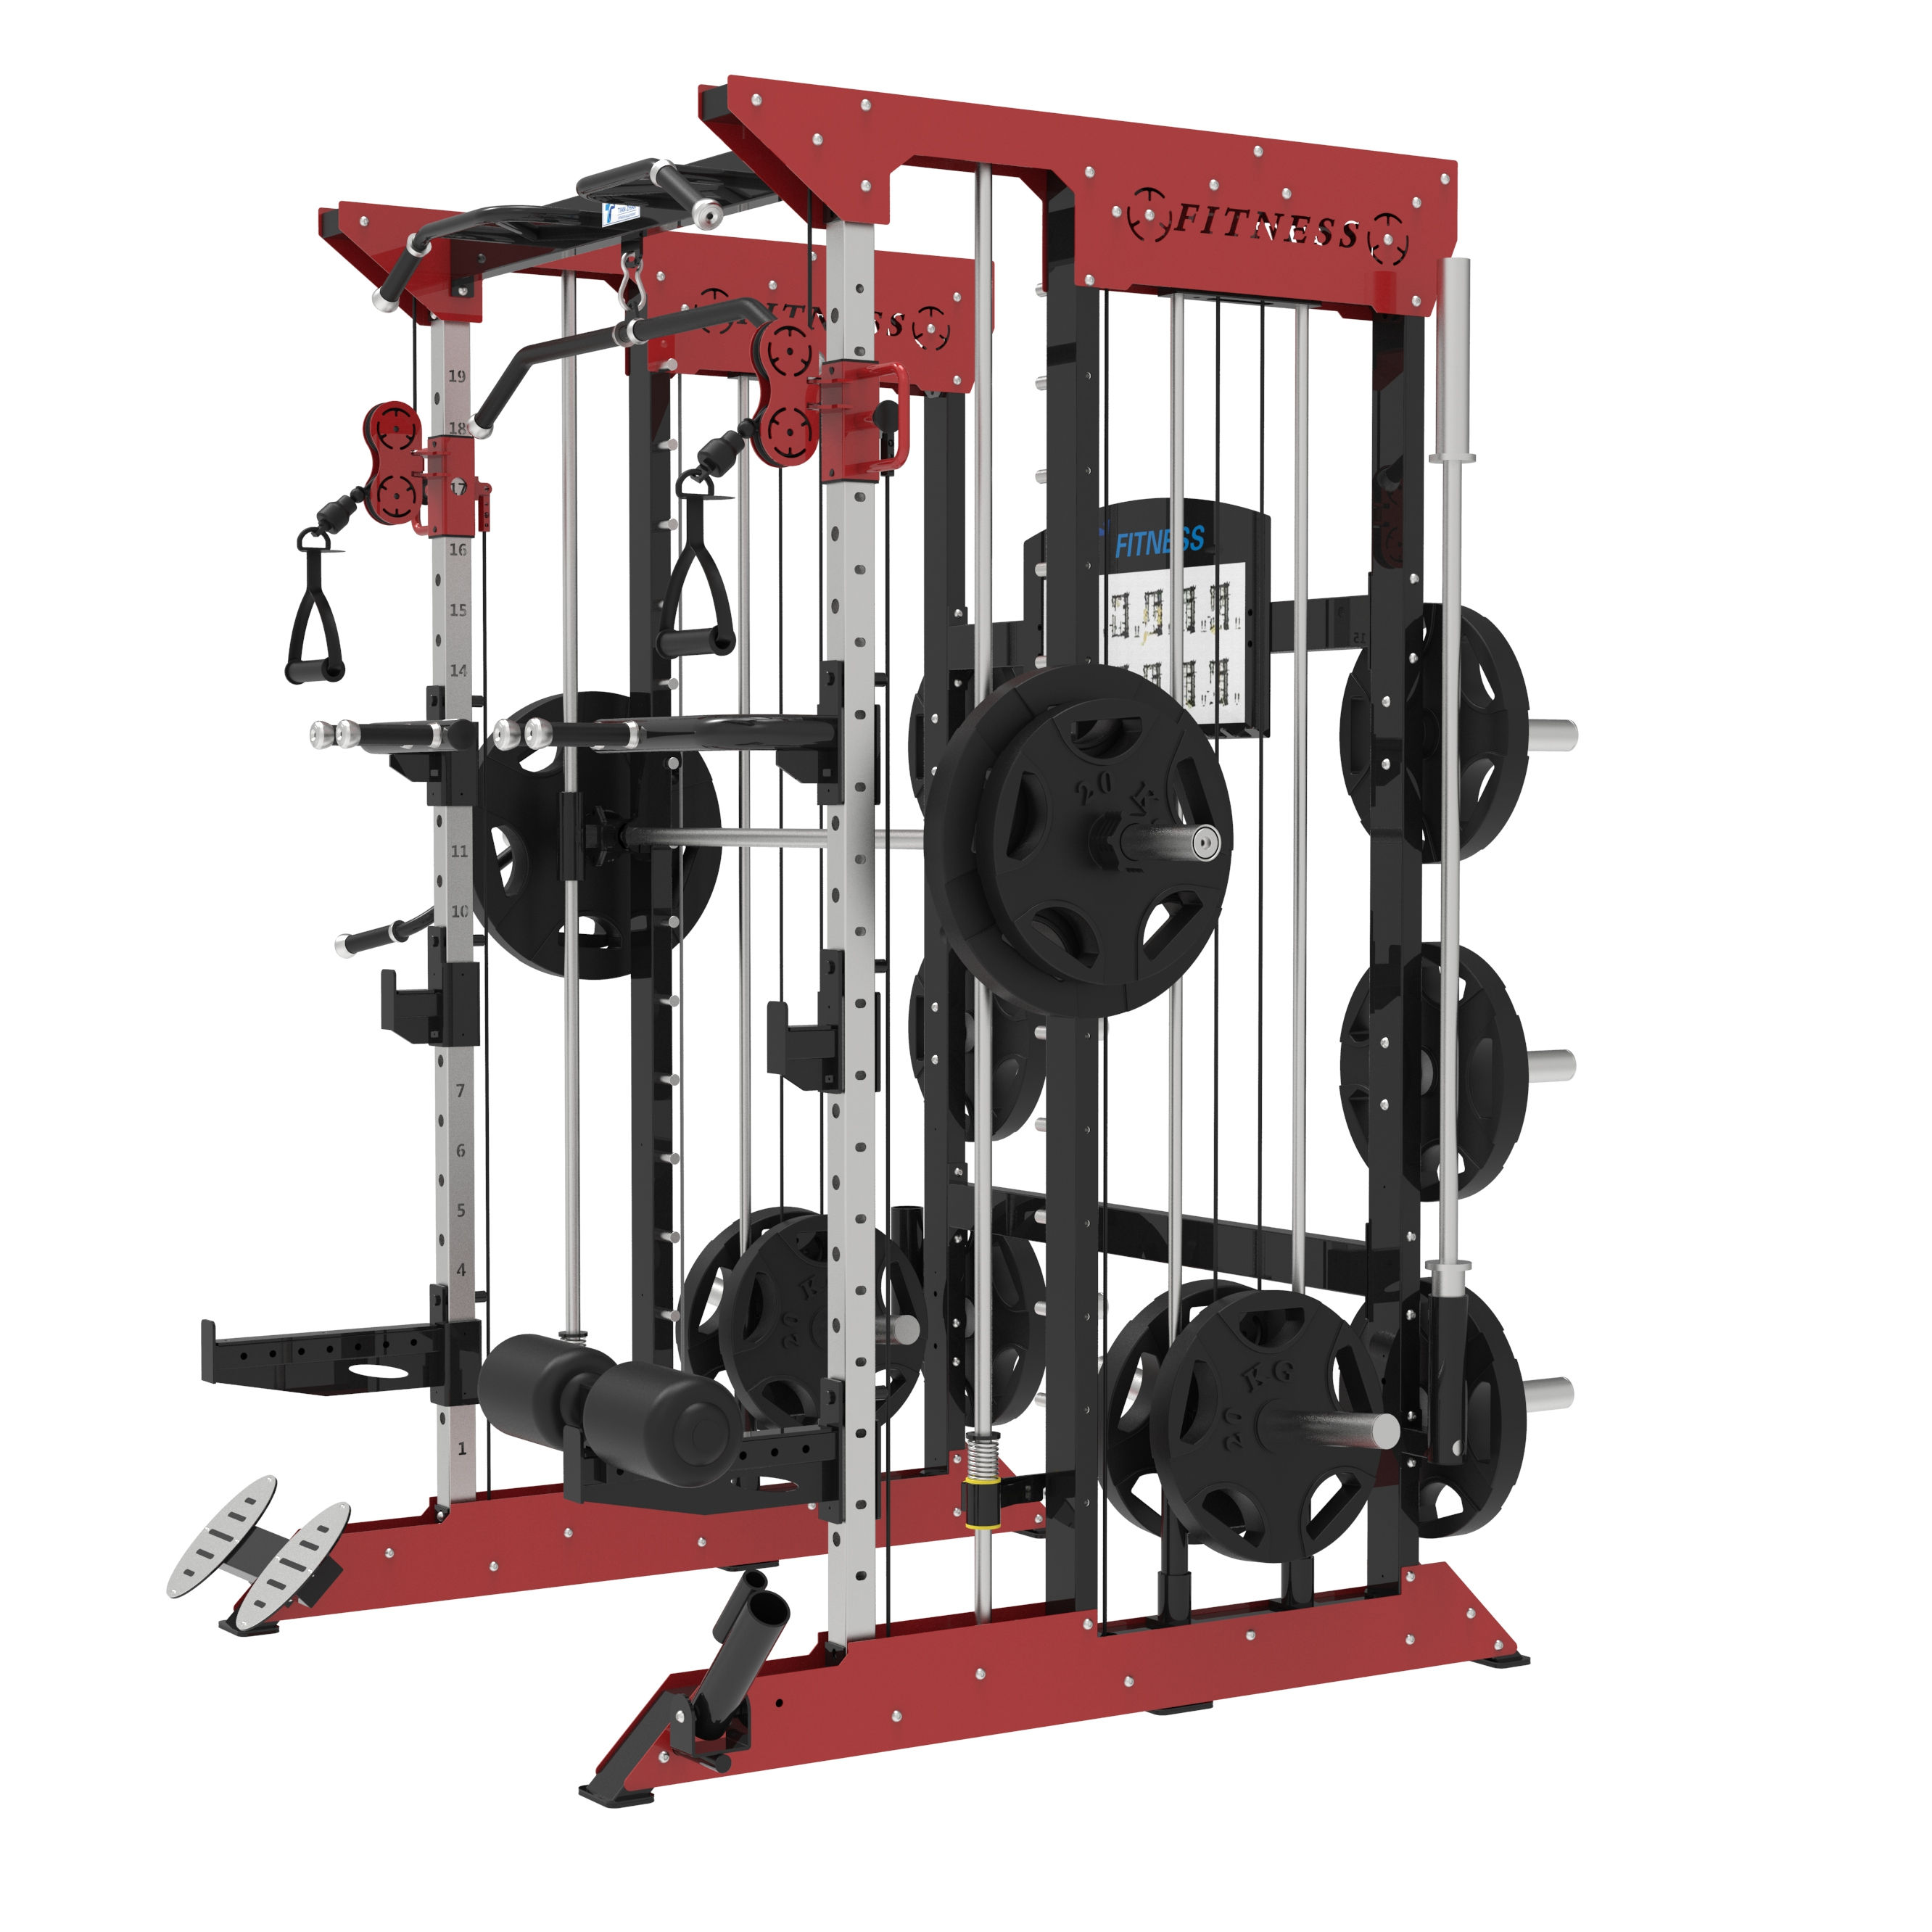 TZ-Q1002 Multi-fonction Smith Machine D'entraînement Supports Gym Commerciale de Forme Physique D'équipement de Machine De Force